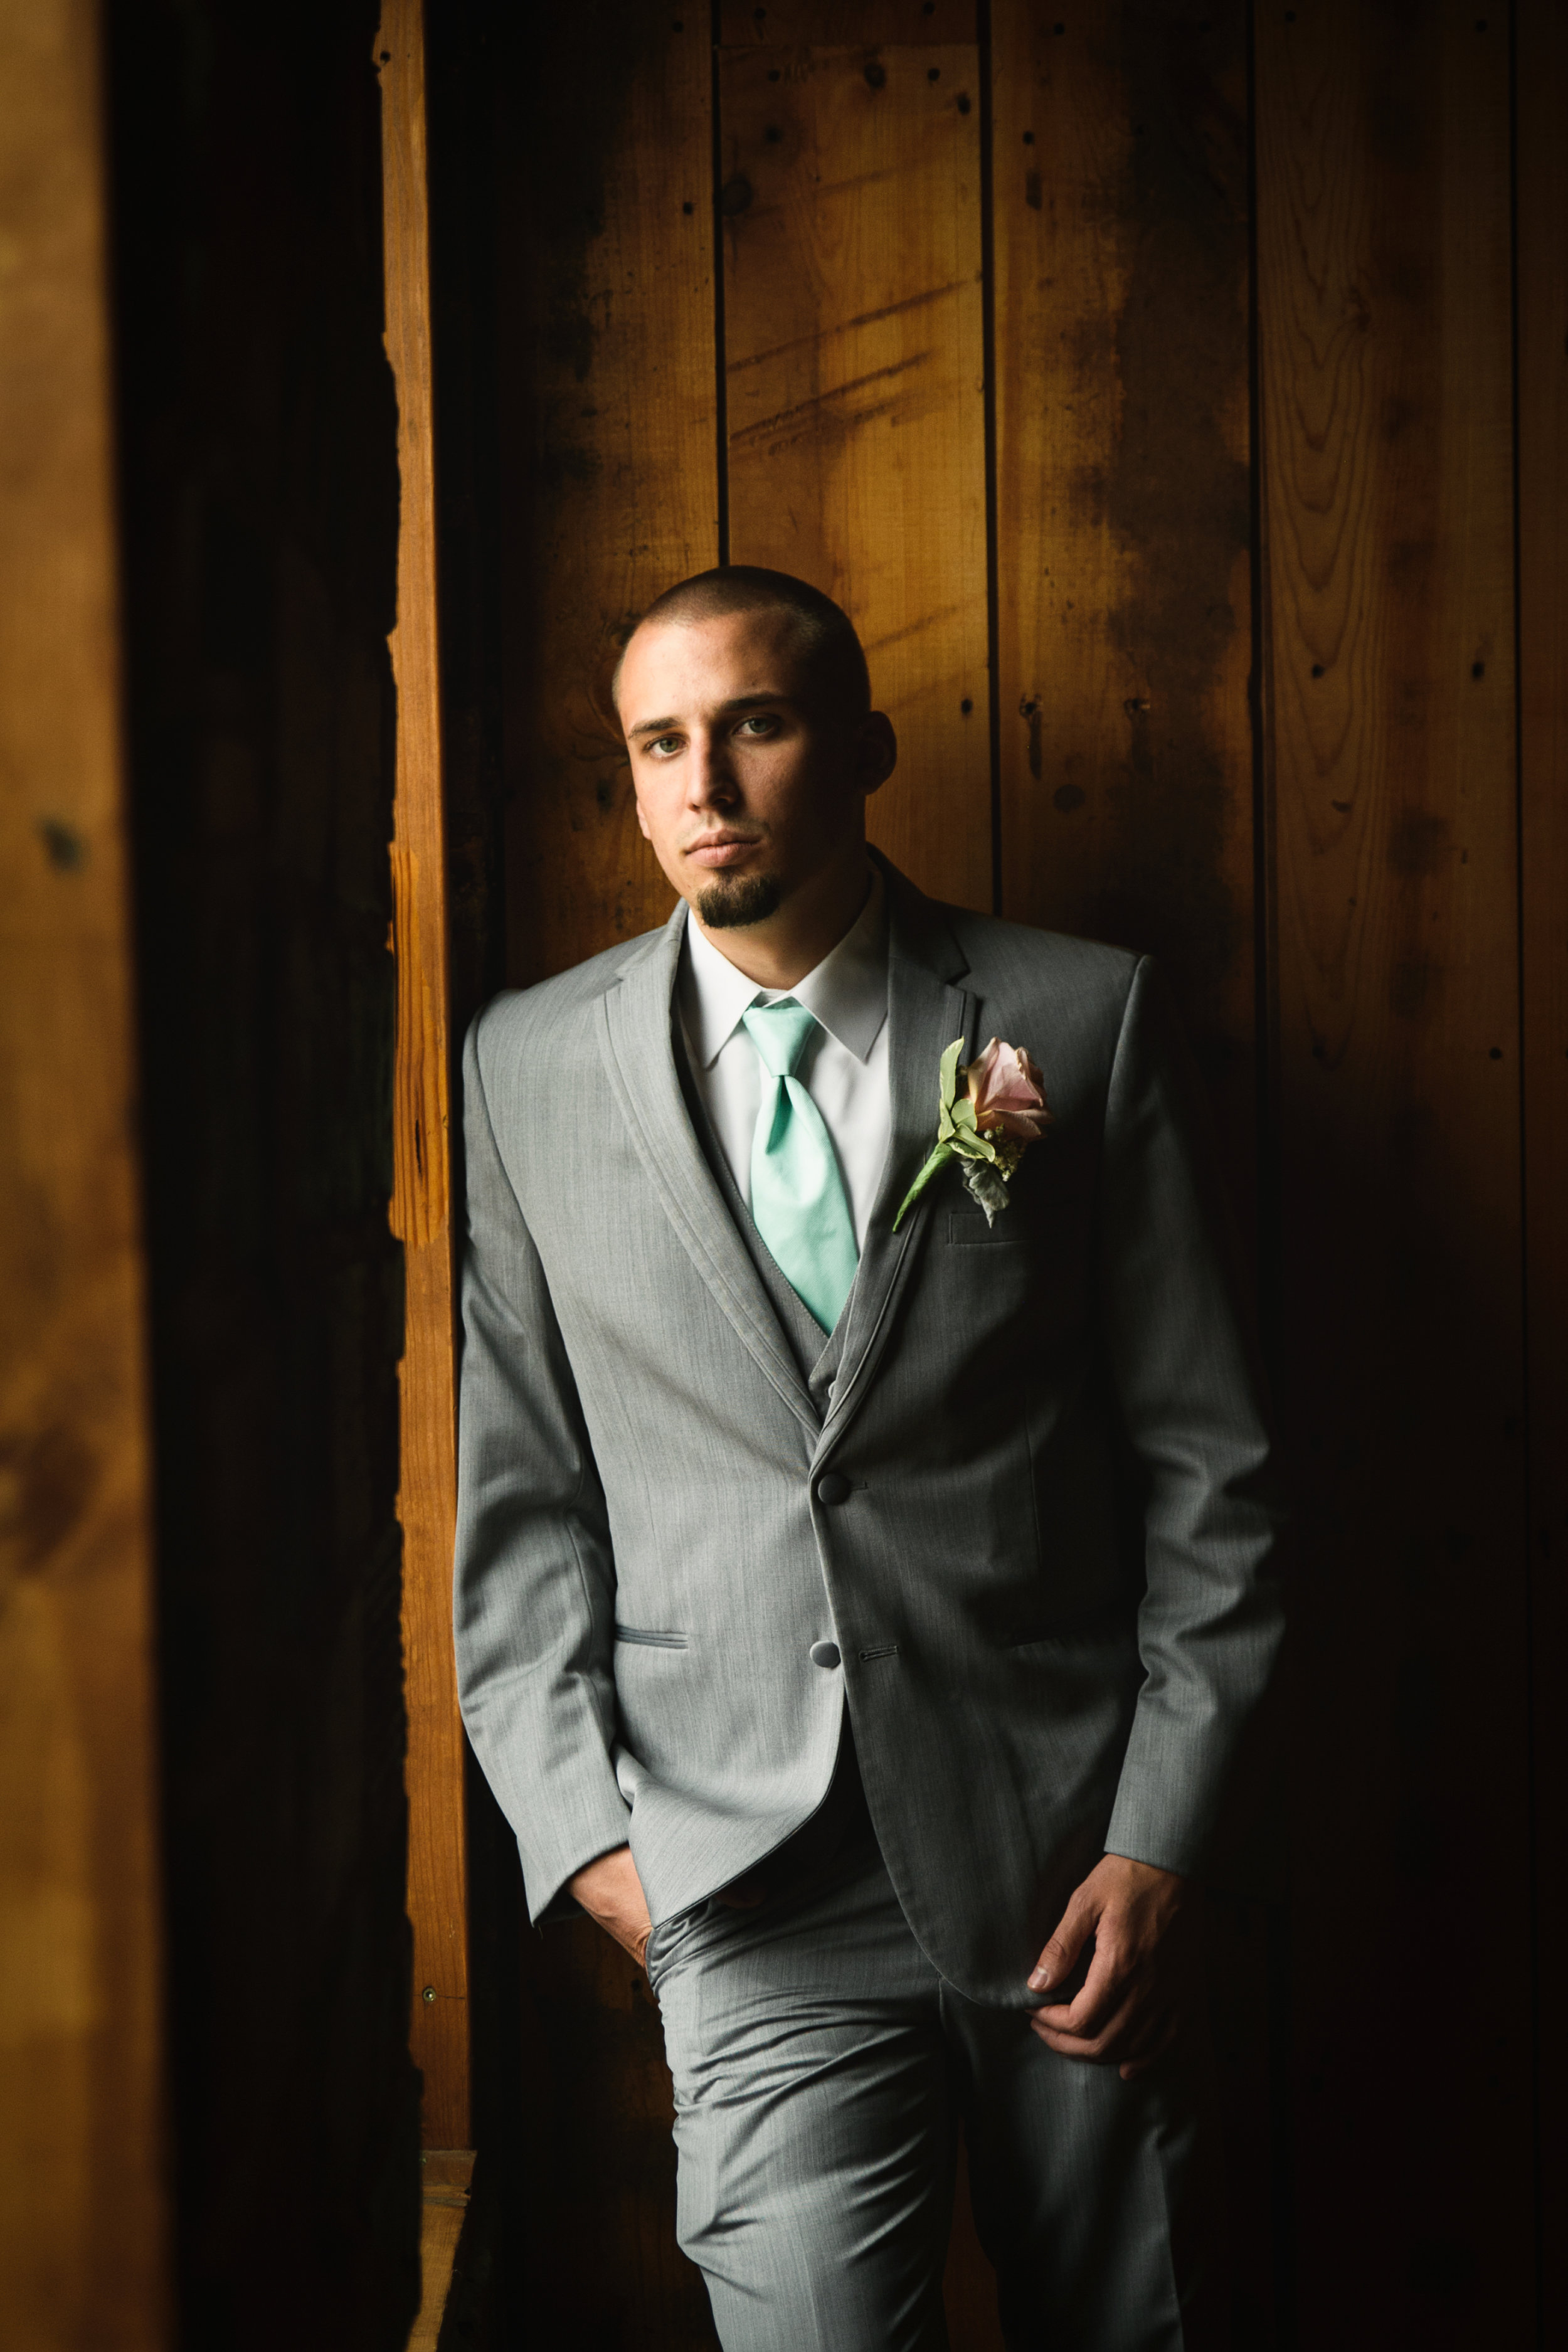 Rustix in Humboldt, The Groom Ready for his Bride.